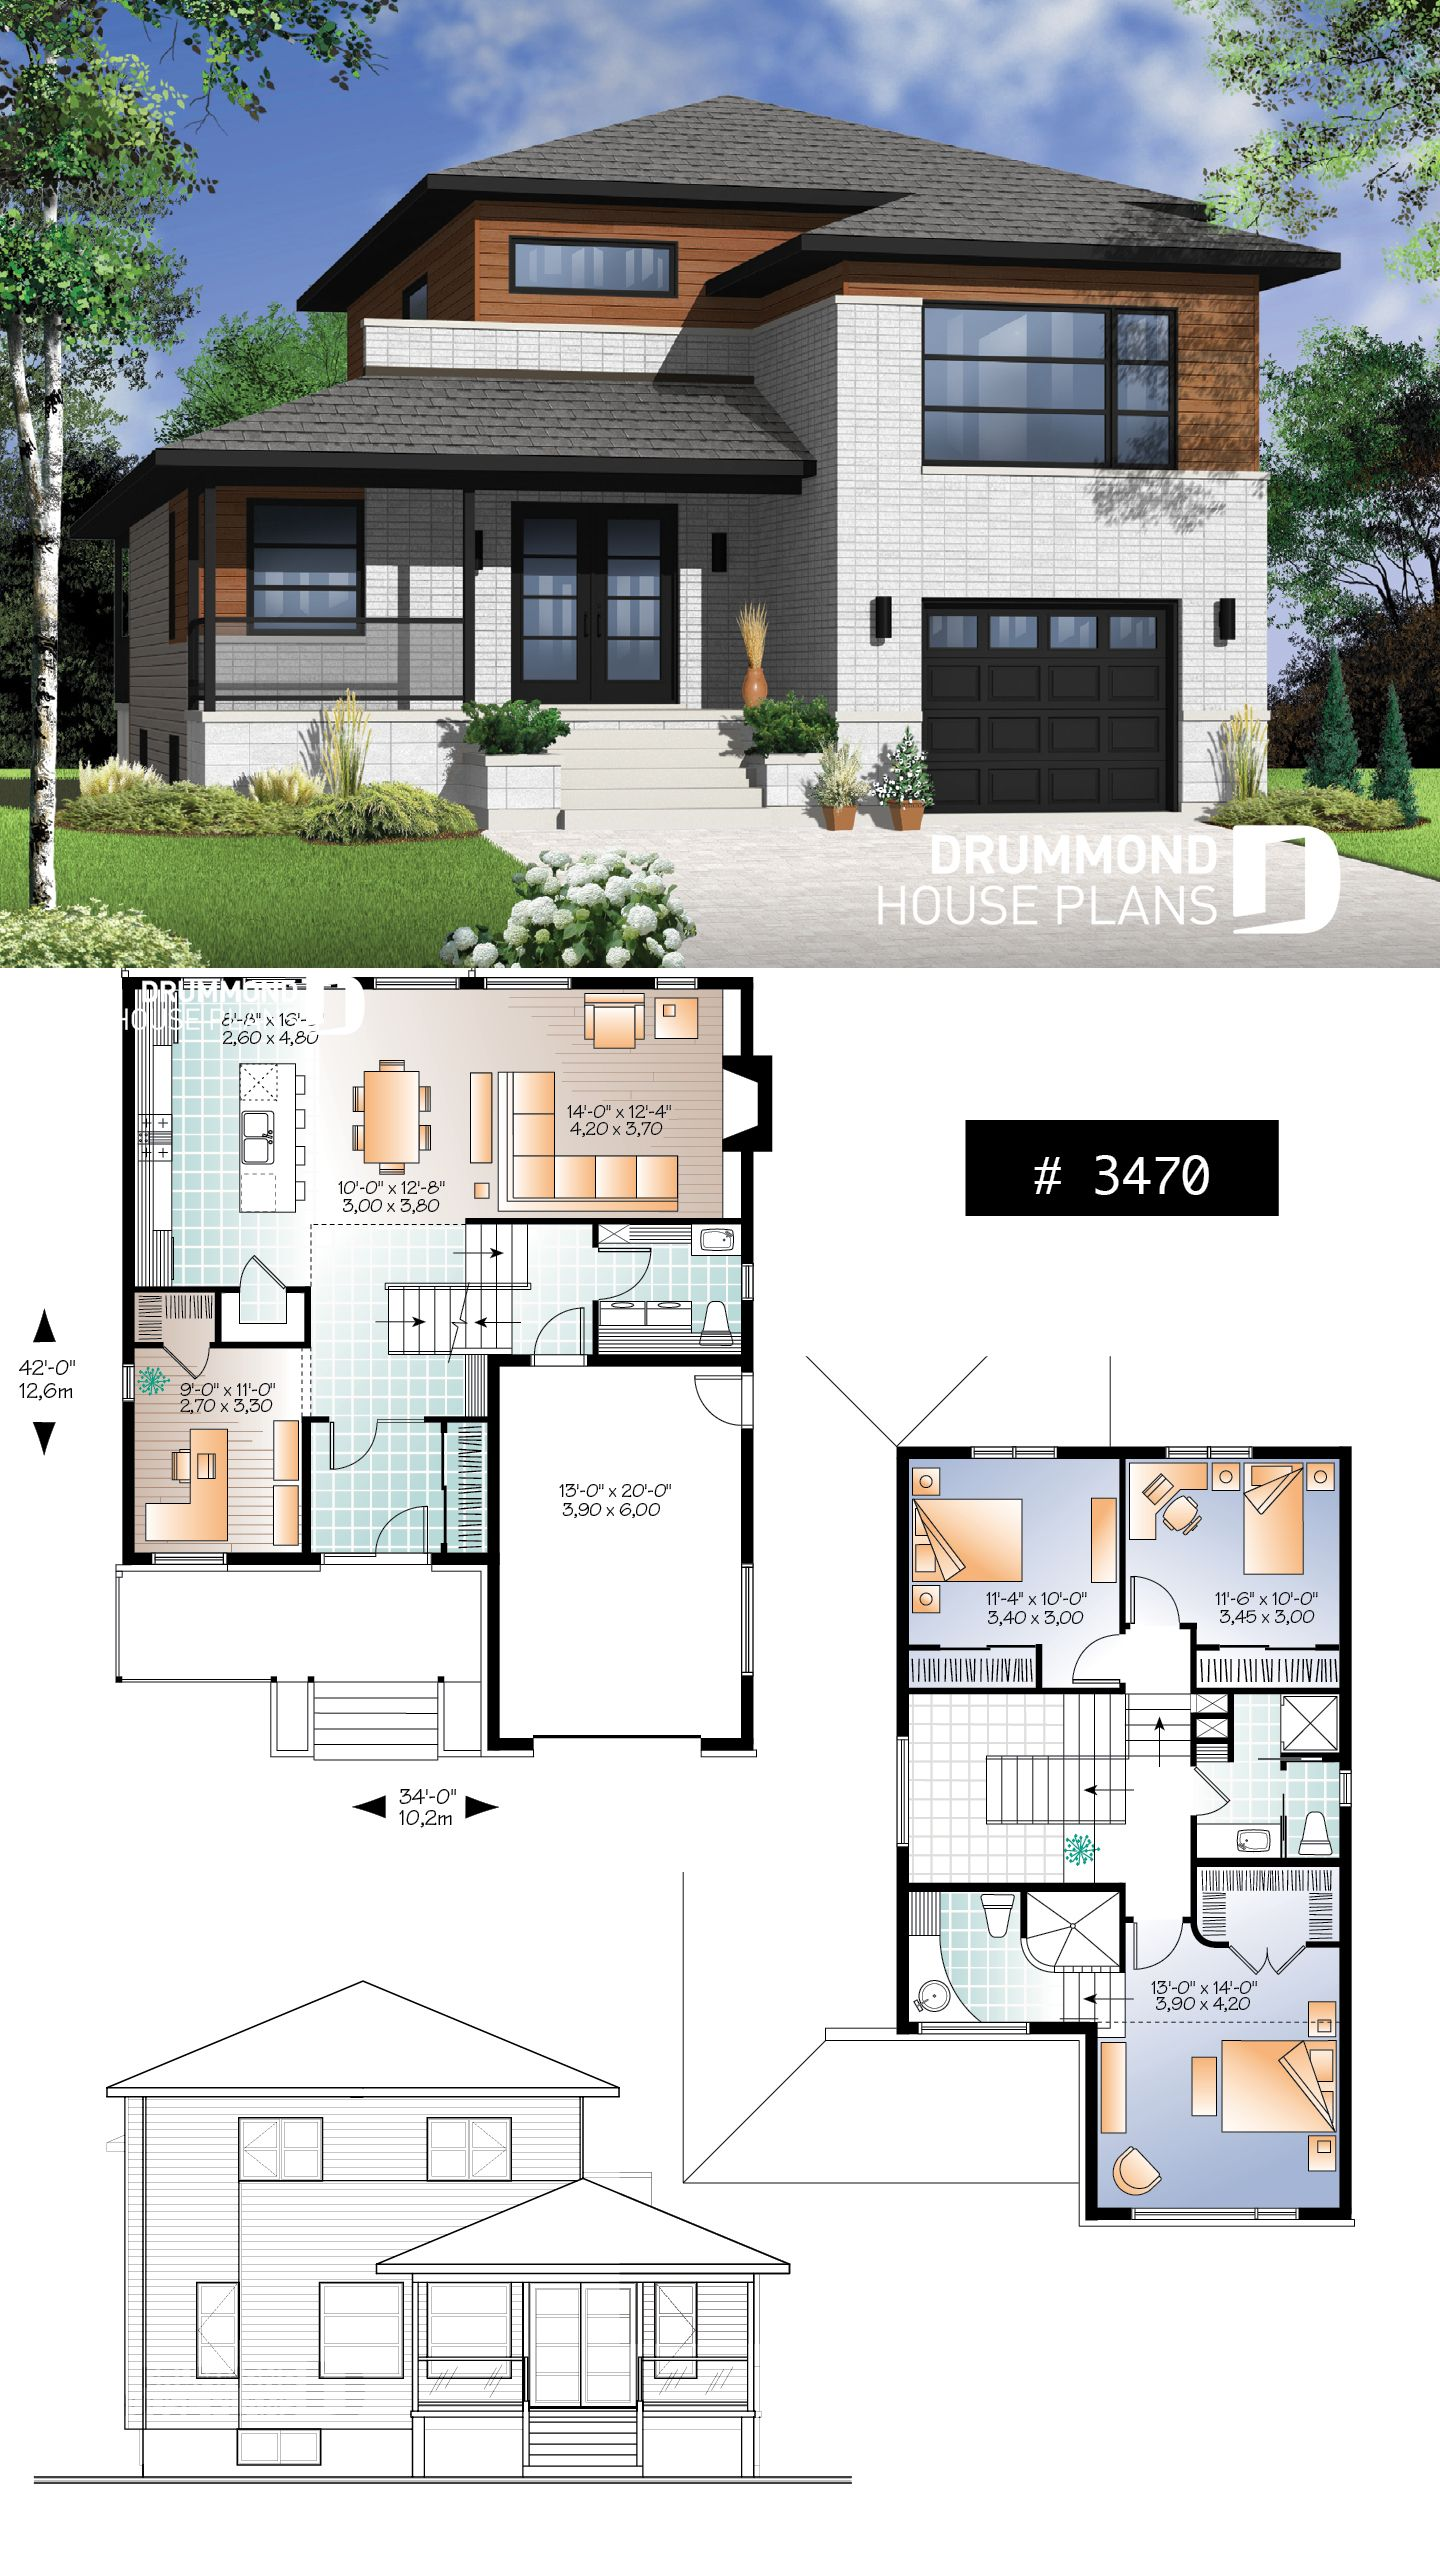 Decouvrez Le Plan 3470 Lindsay Qui Vous Plaira Pour Ses 3 4 Chambres Et Son Style Contemporain Zen House Blueprints Modern House Floor Plans New House Plans